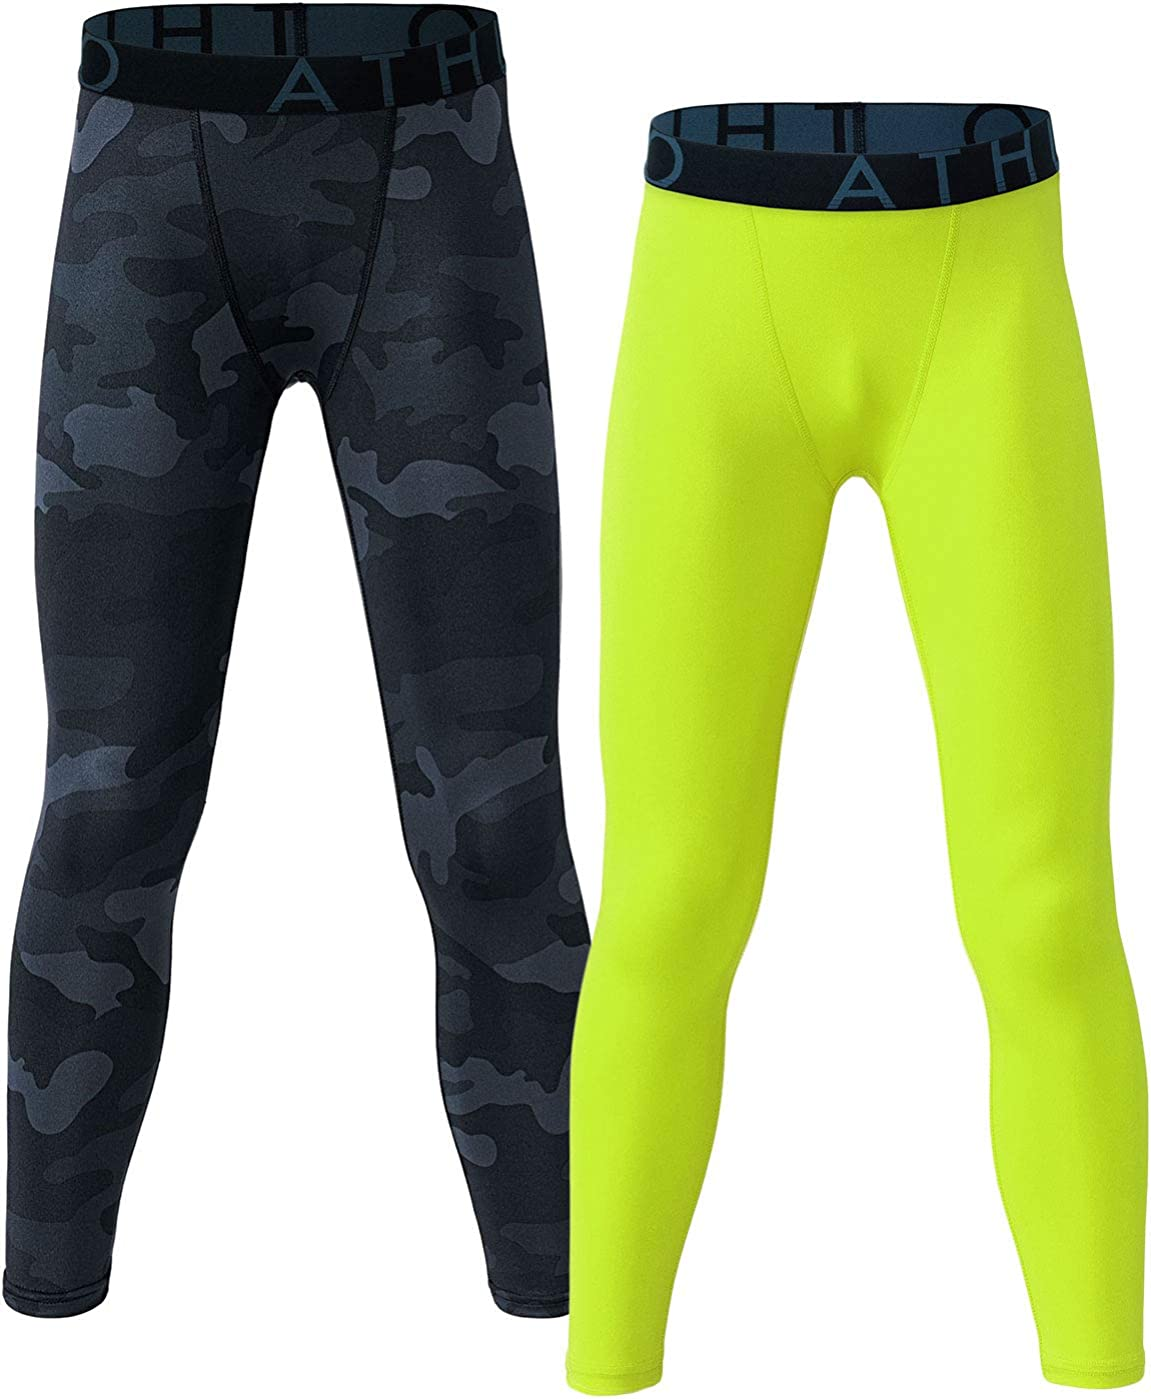 ATHLIO 1 or 2 Pack Boy's UPF 50+ Compression Pants Baselayer, Cool Dry Active Running Tights, 4-Way Stretch Workout Leggings: Clothing